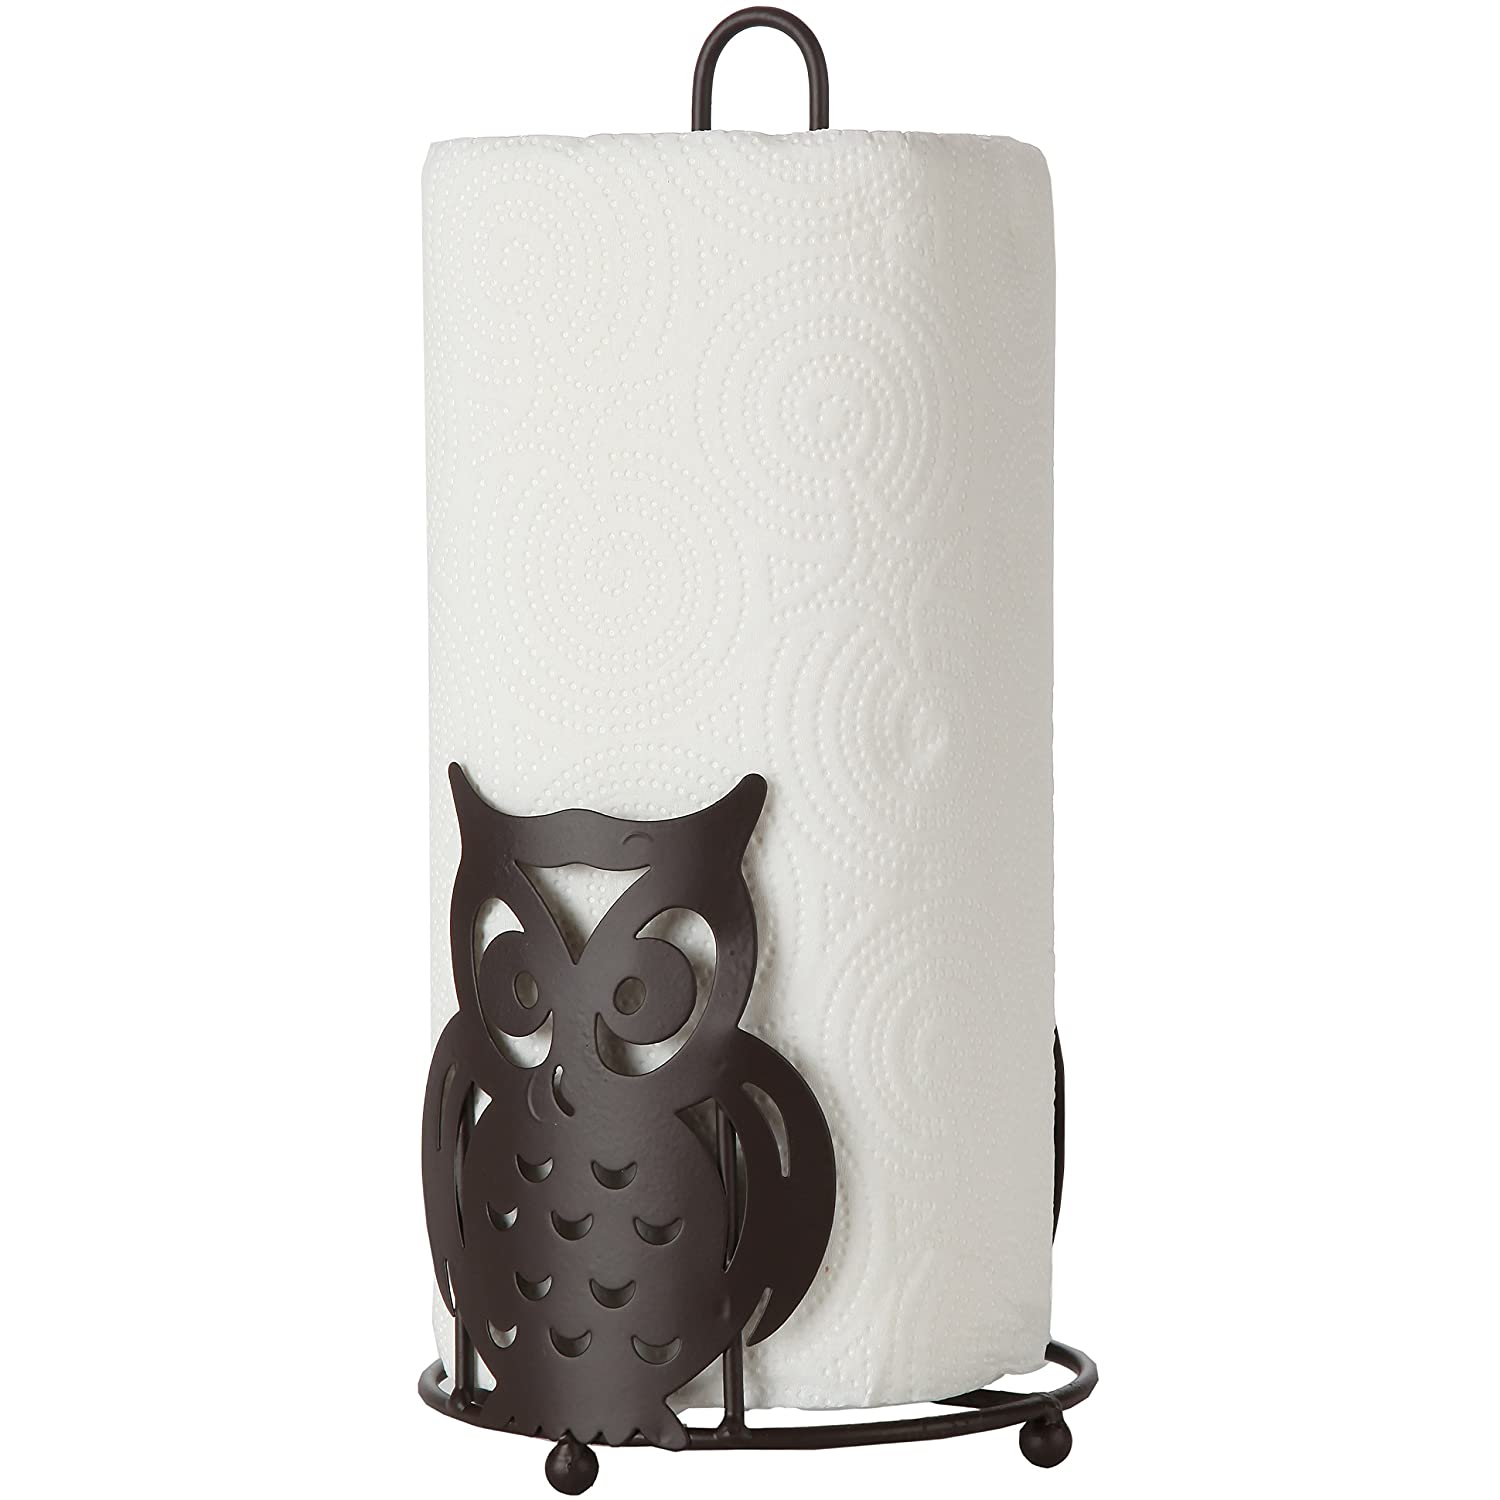 Home-X Bronze Paper Towel Holder with Owl Design